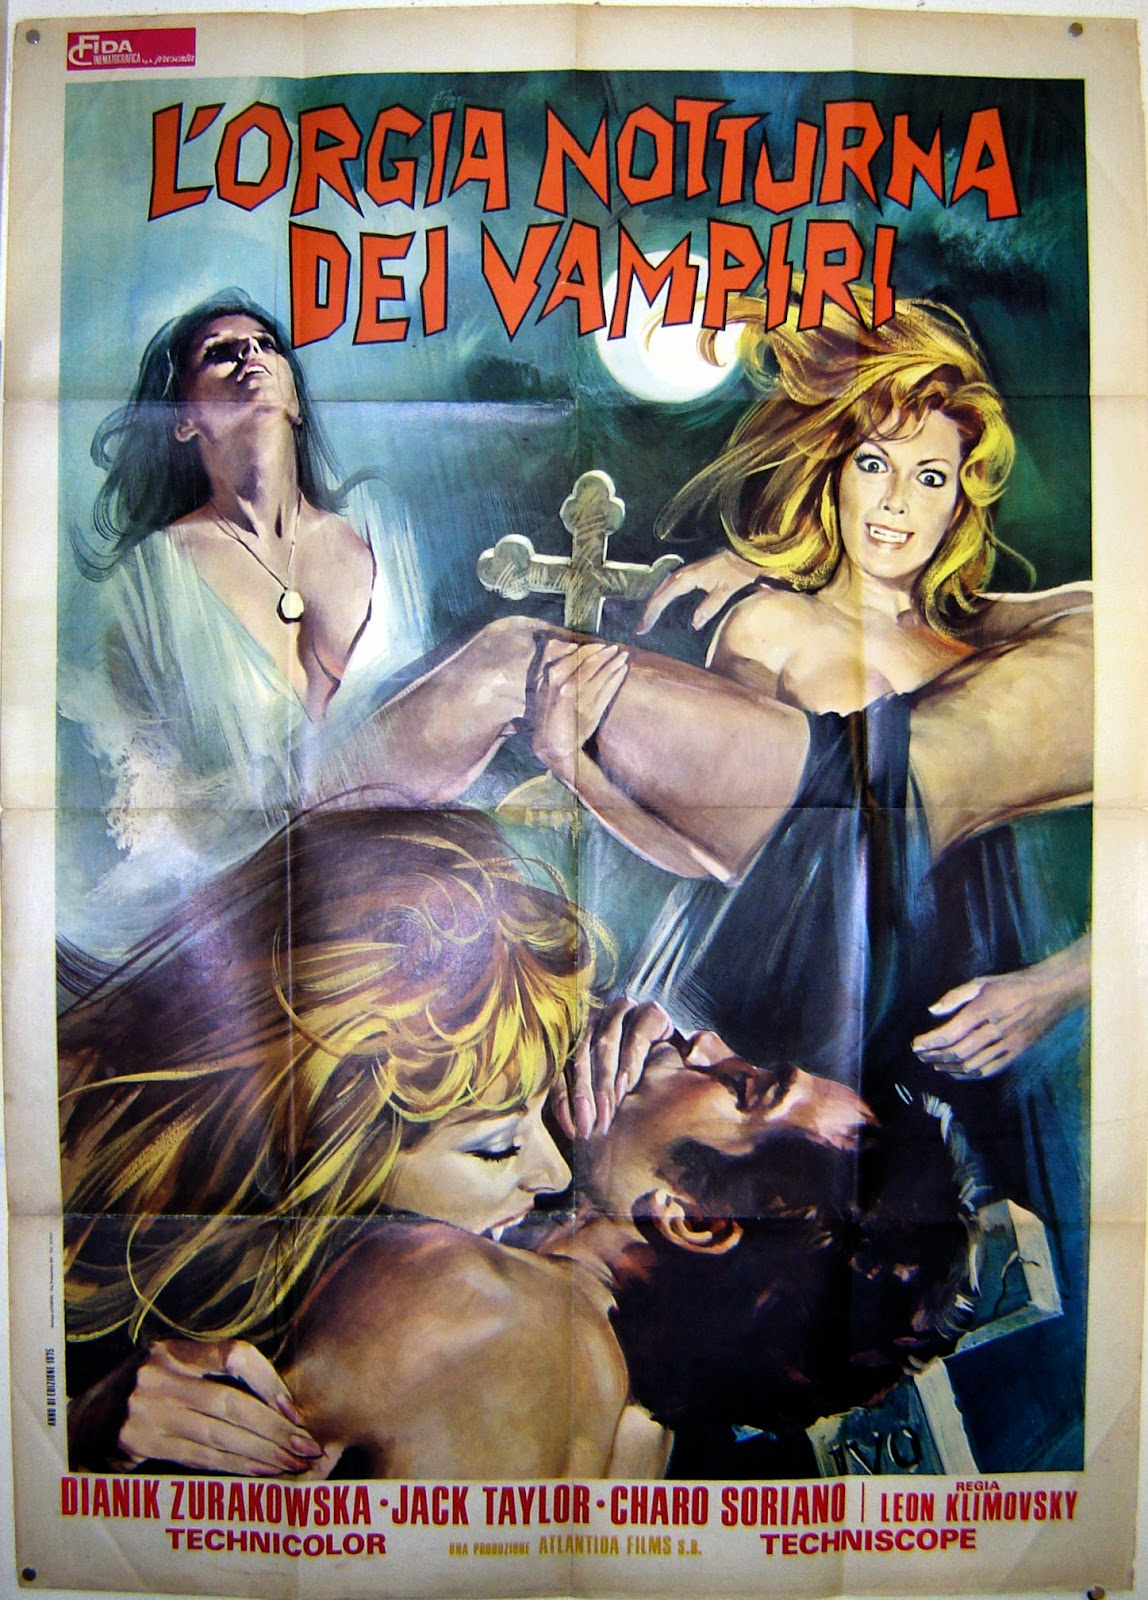 Italian Film Poster The Vampire's Night Orgy, three images of the beauty Helga Line feasting on the blood of men.